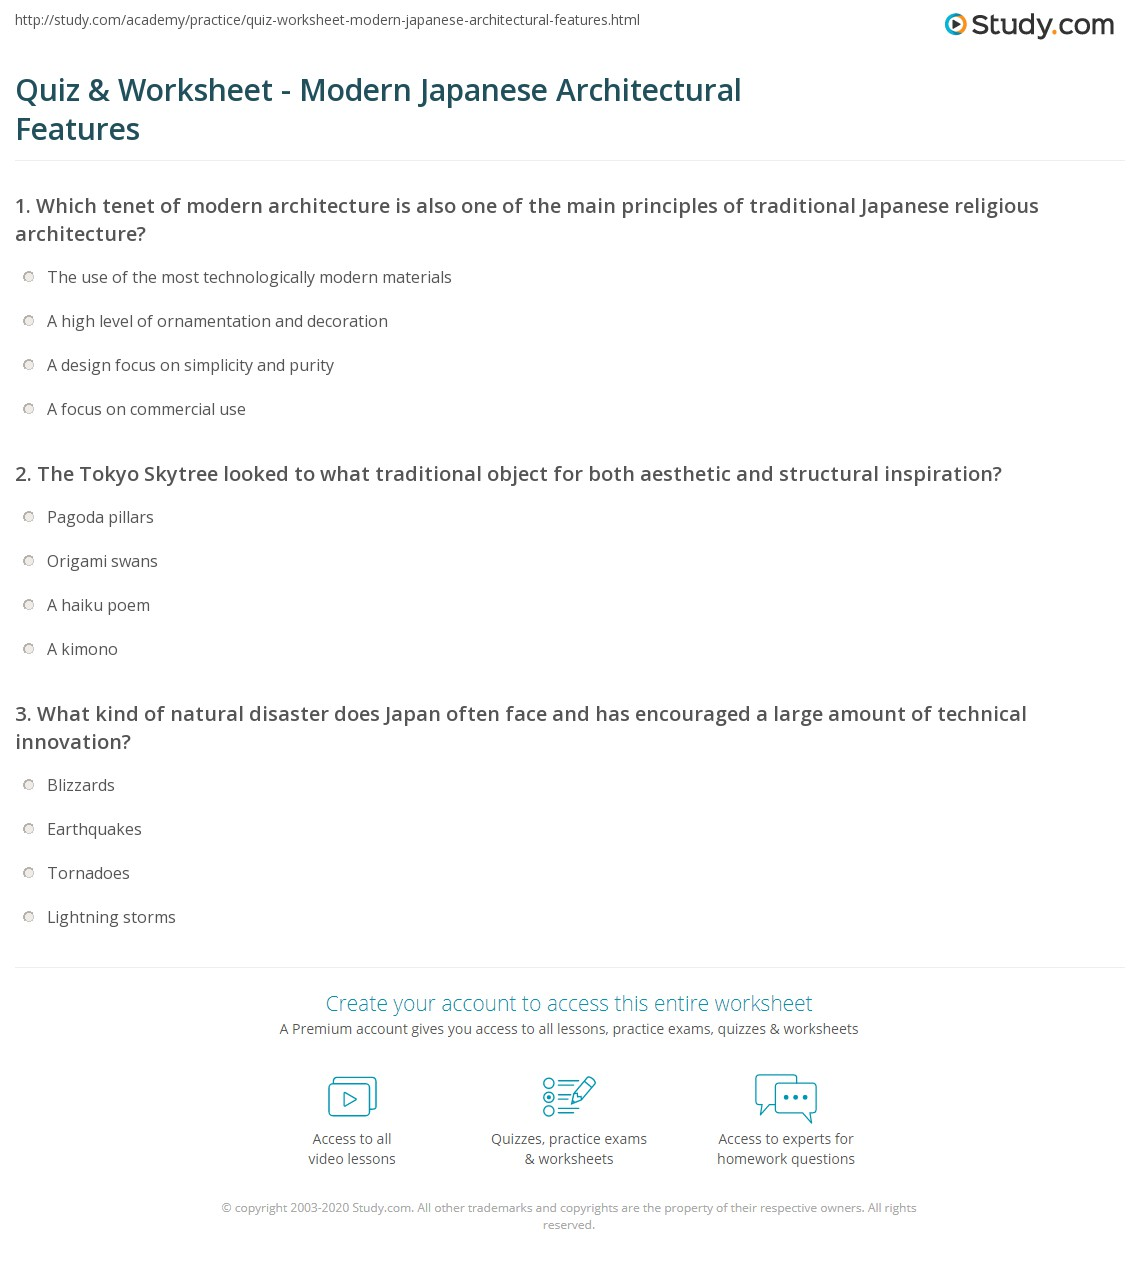 Quiz Worksheet Modern Japanese Architectural Features Study Com